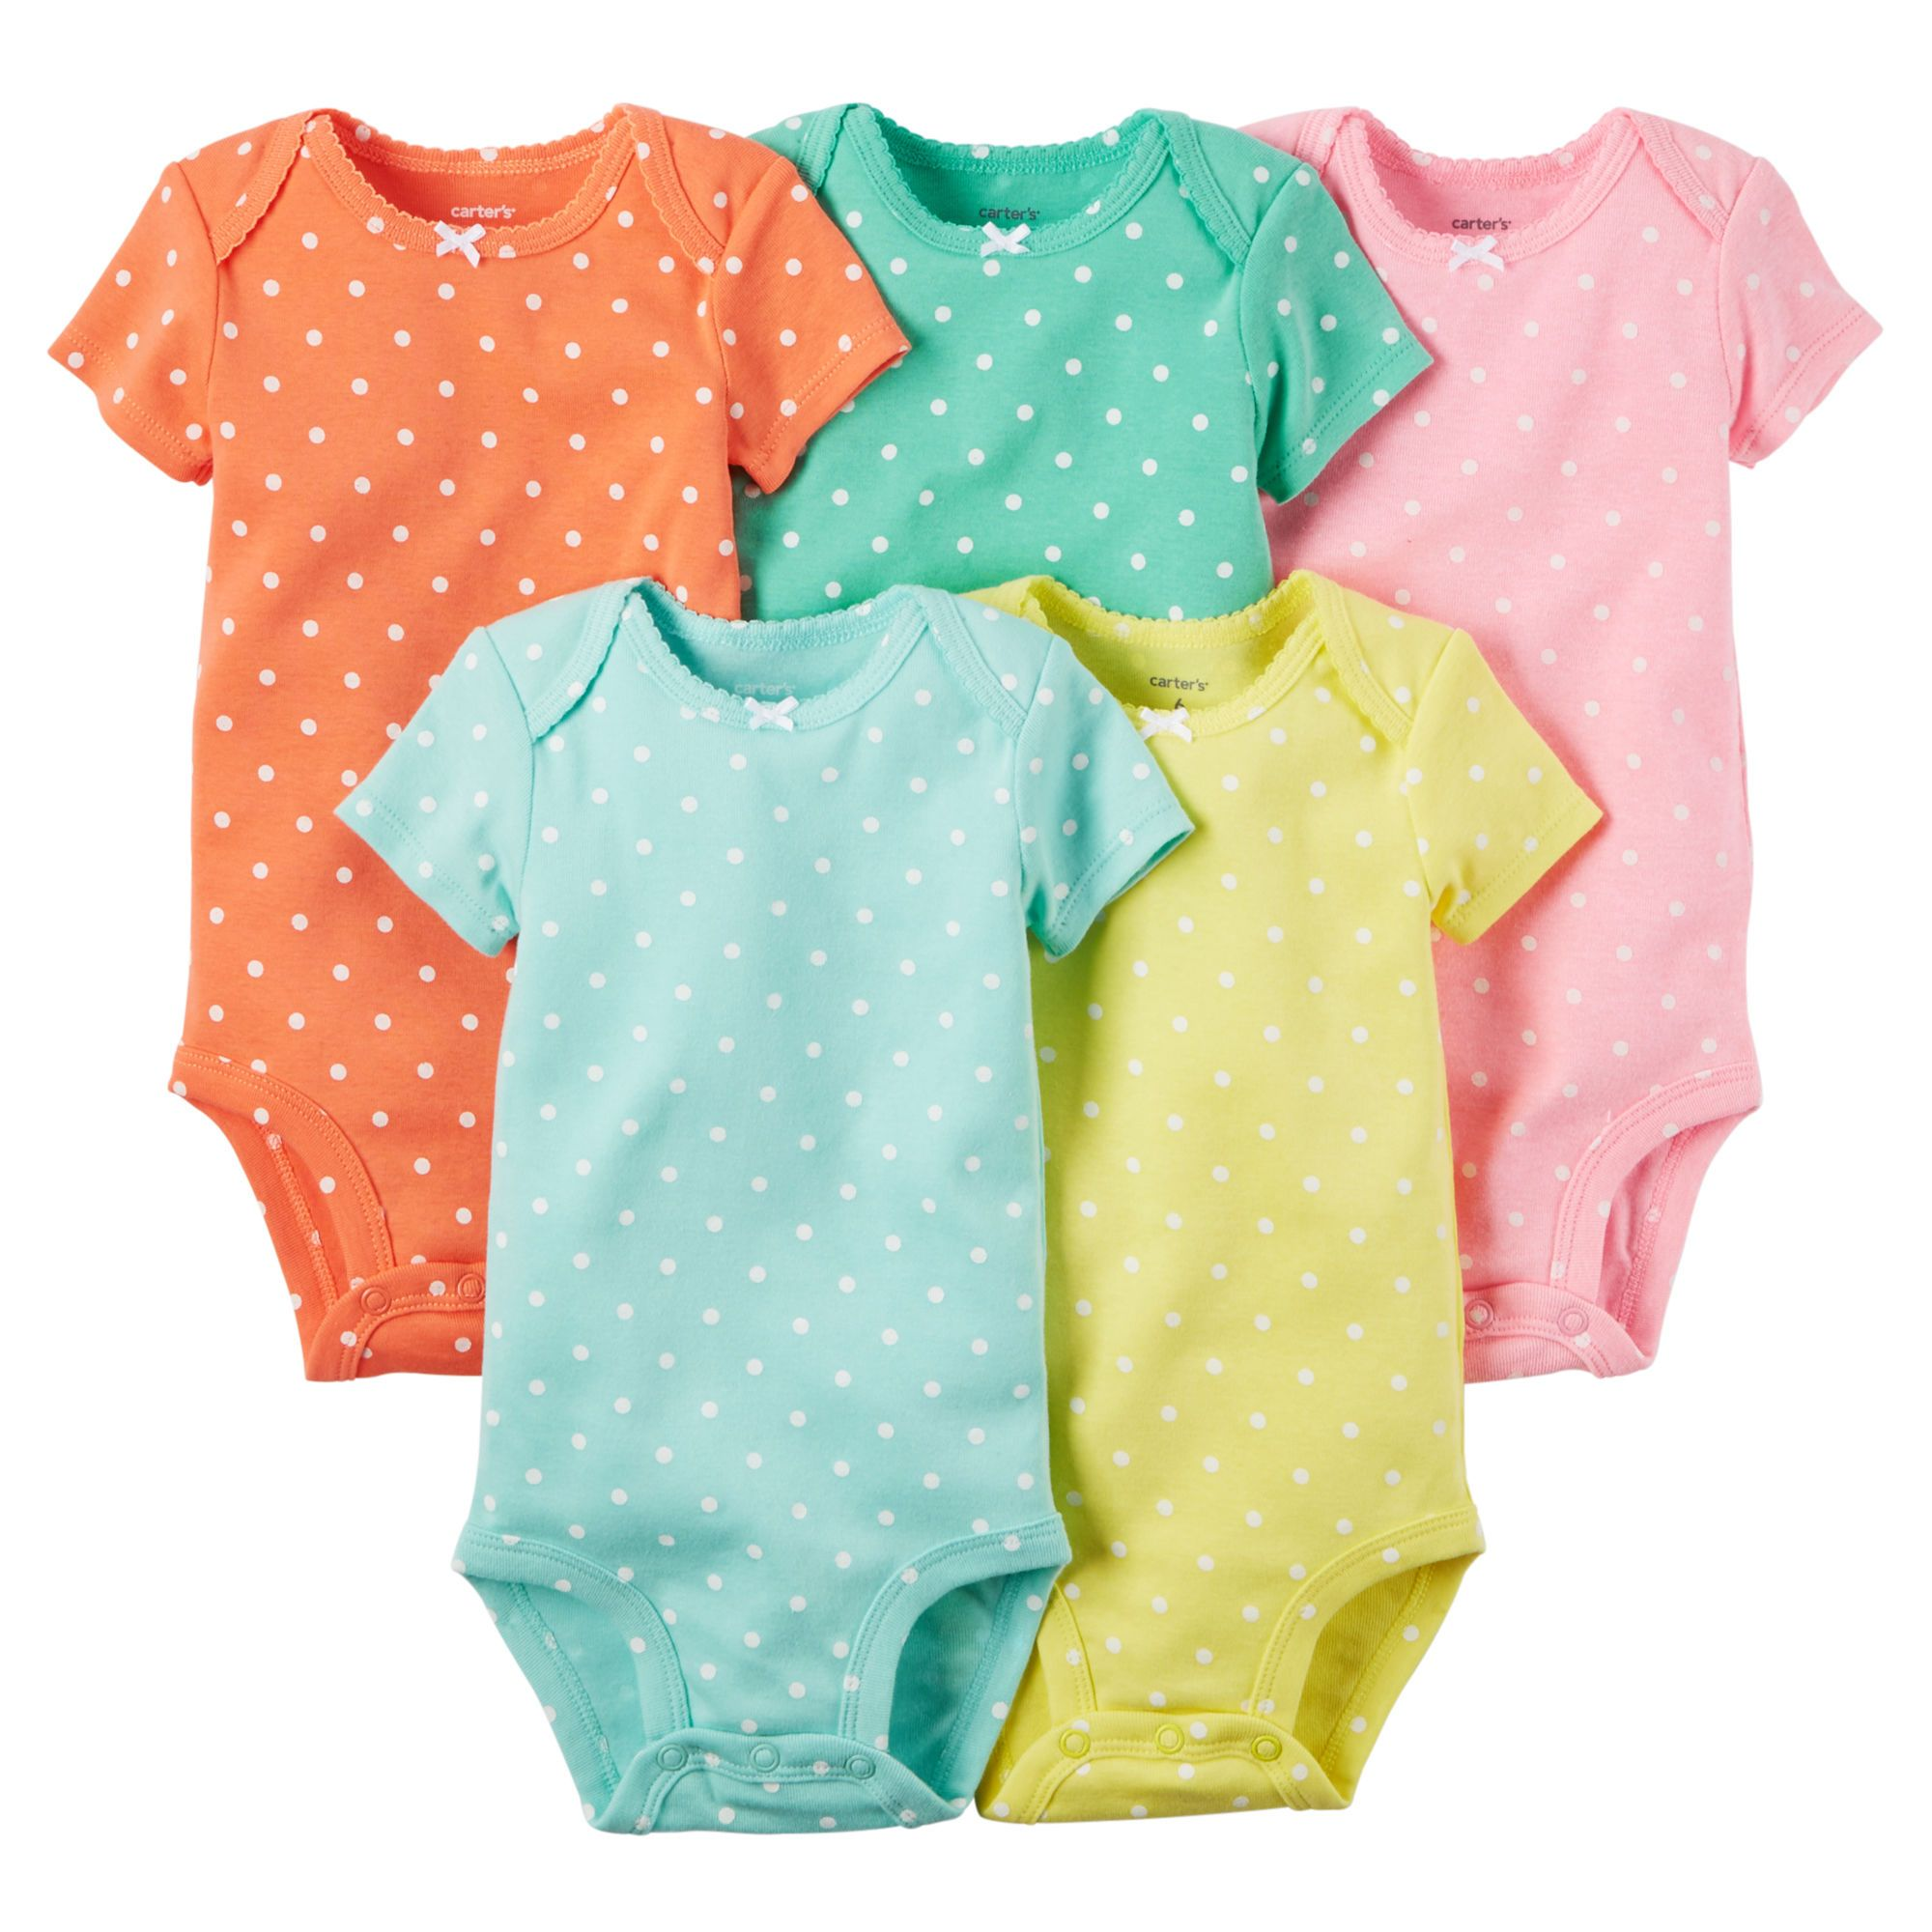 cf3913688 5-Pack Short-Sleeve Bodysuits | carter's | Cute newborn baby clothes ...